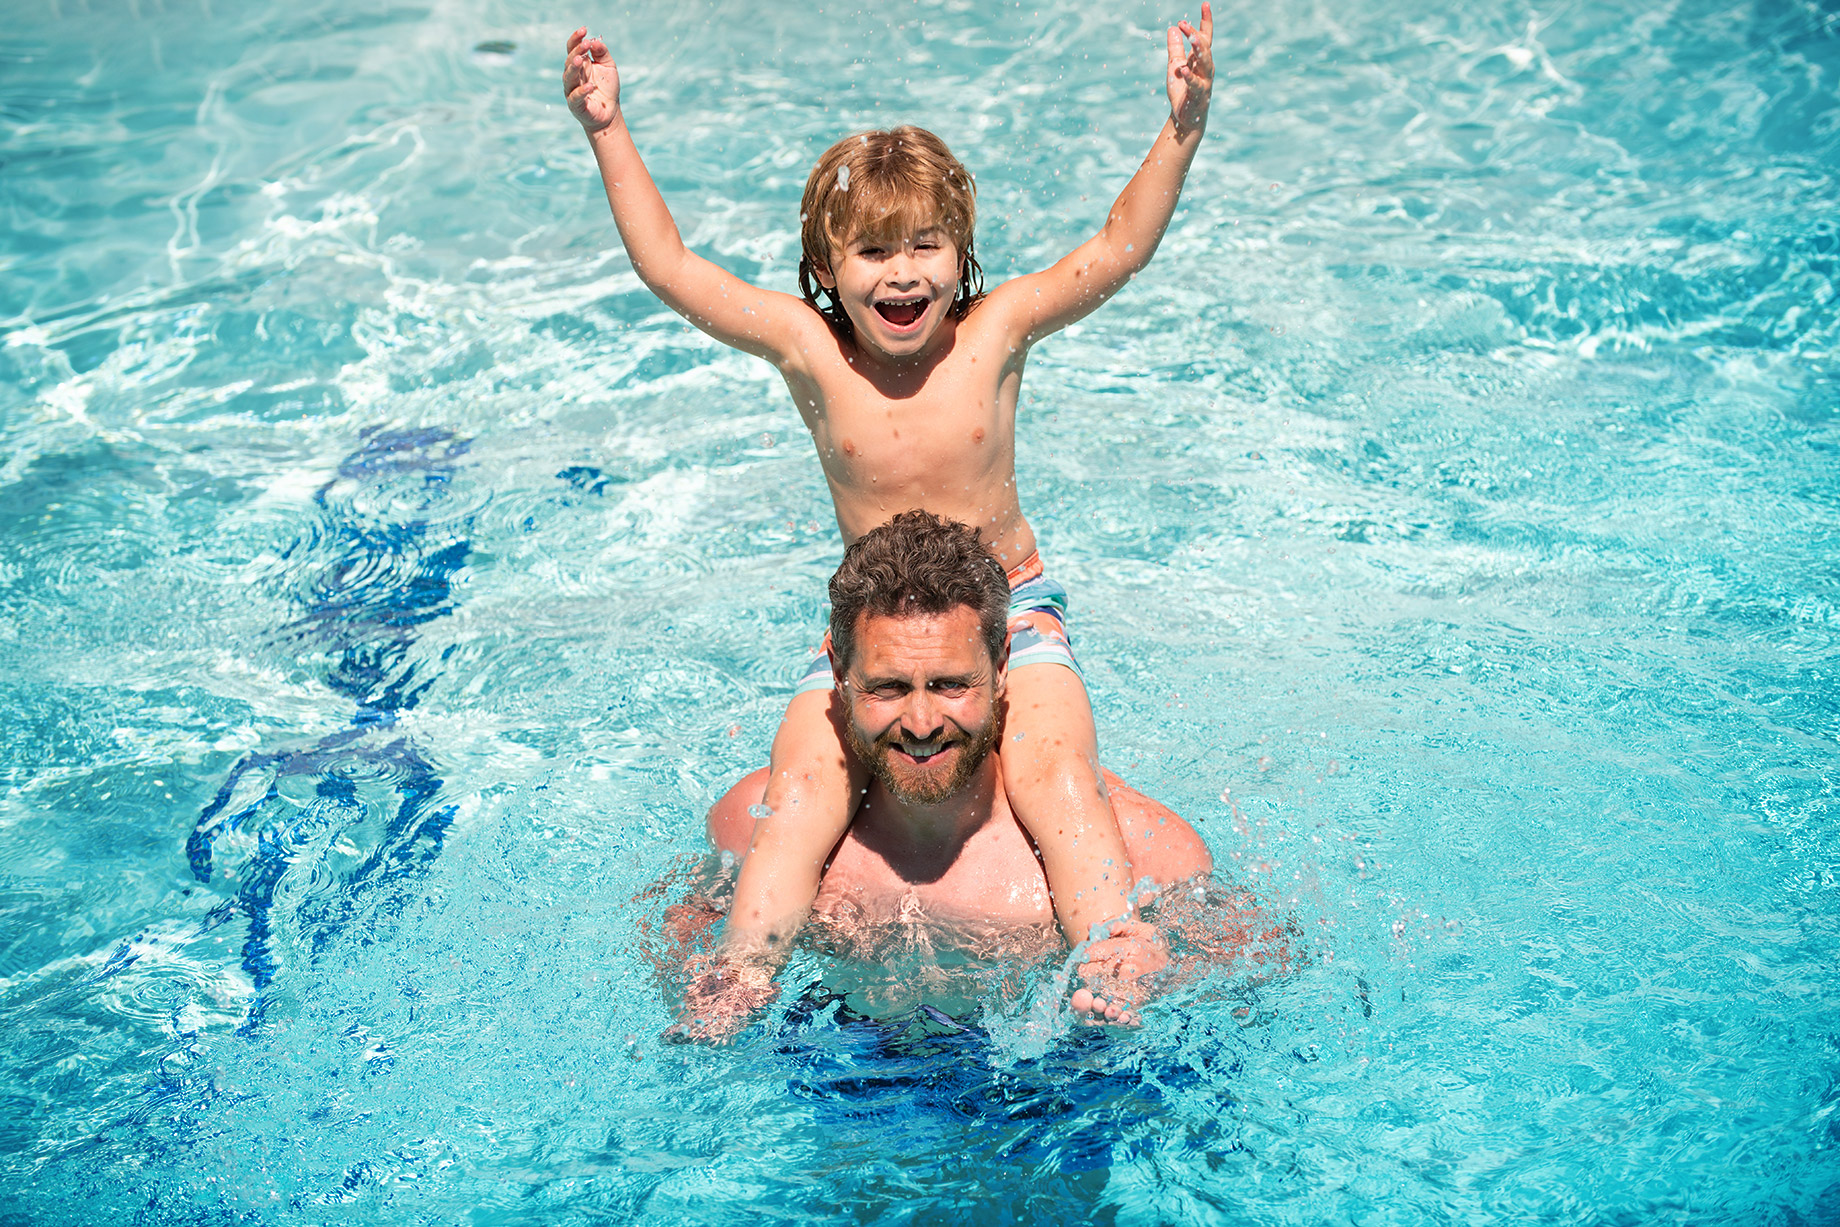 Summer Fun with a Father and Son in a Swimming Pool